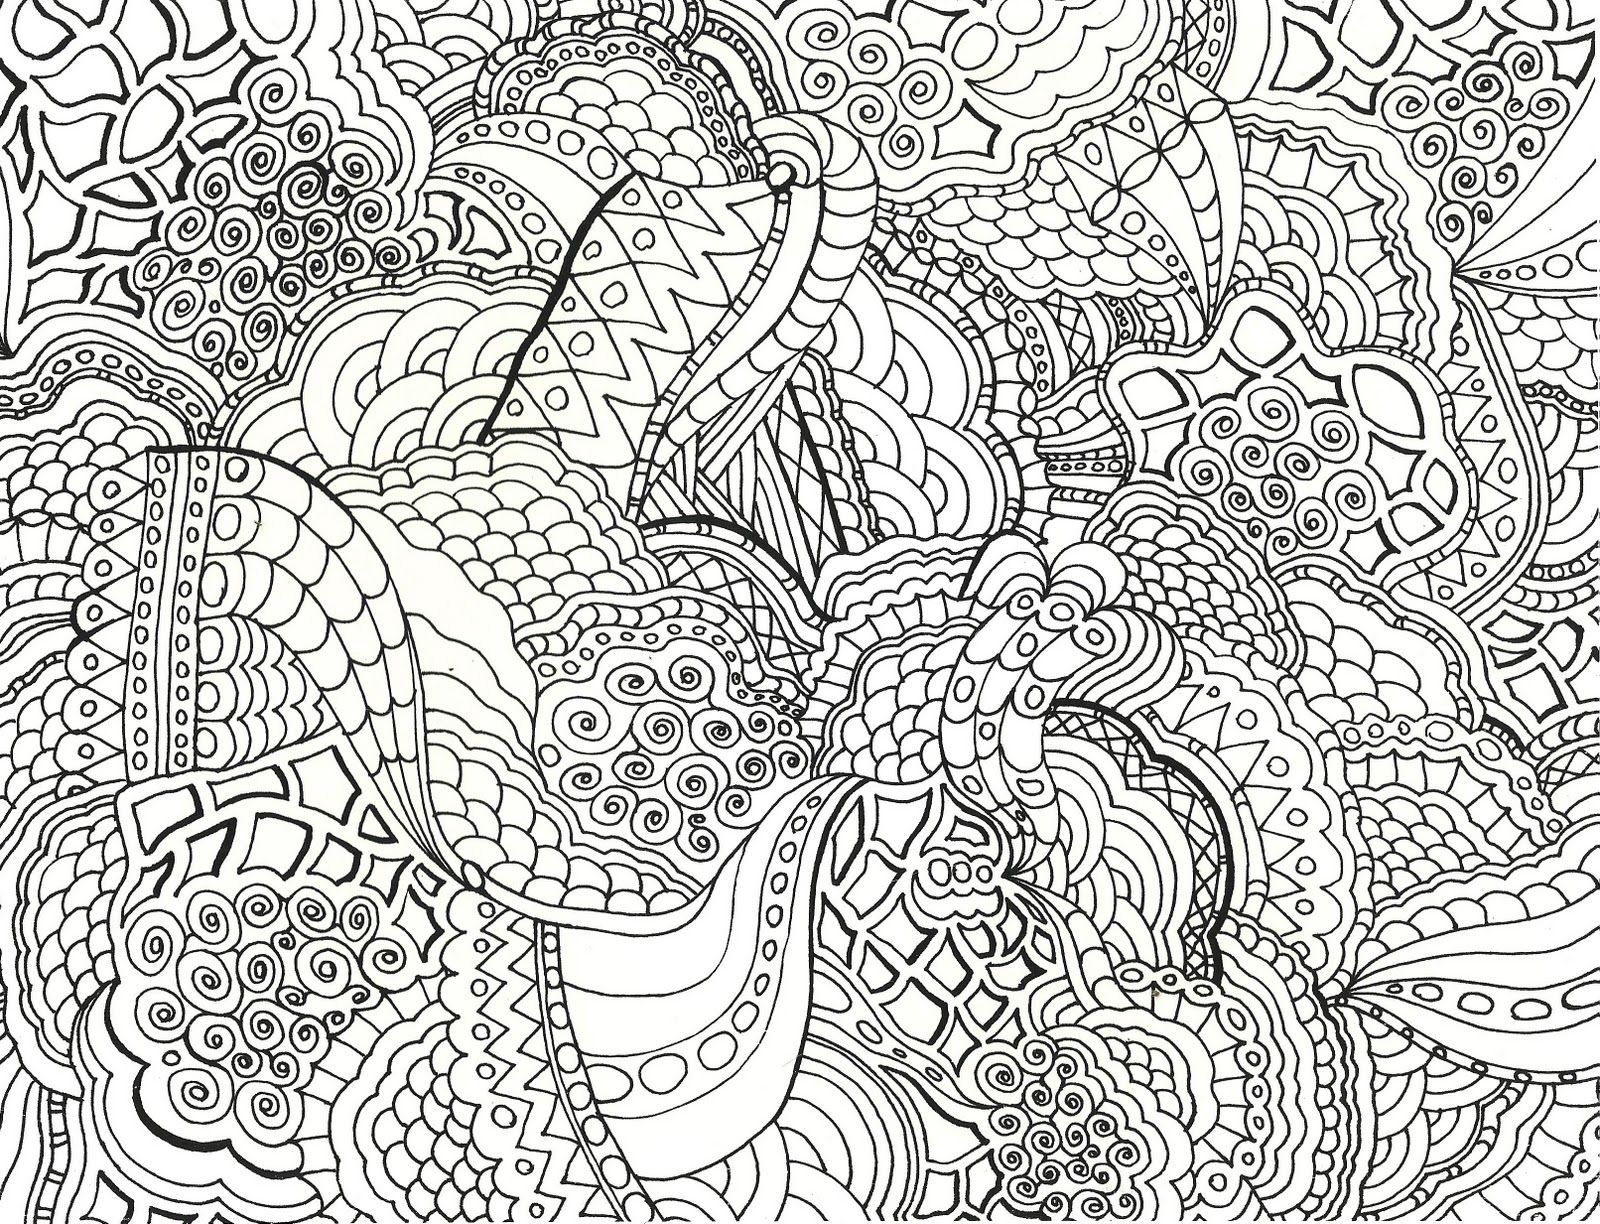 Abstract coloring. Adult pattern pages tagged